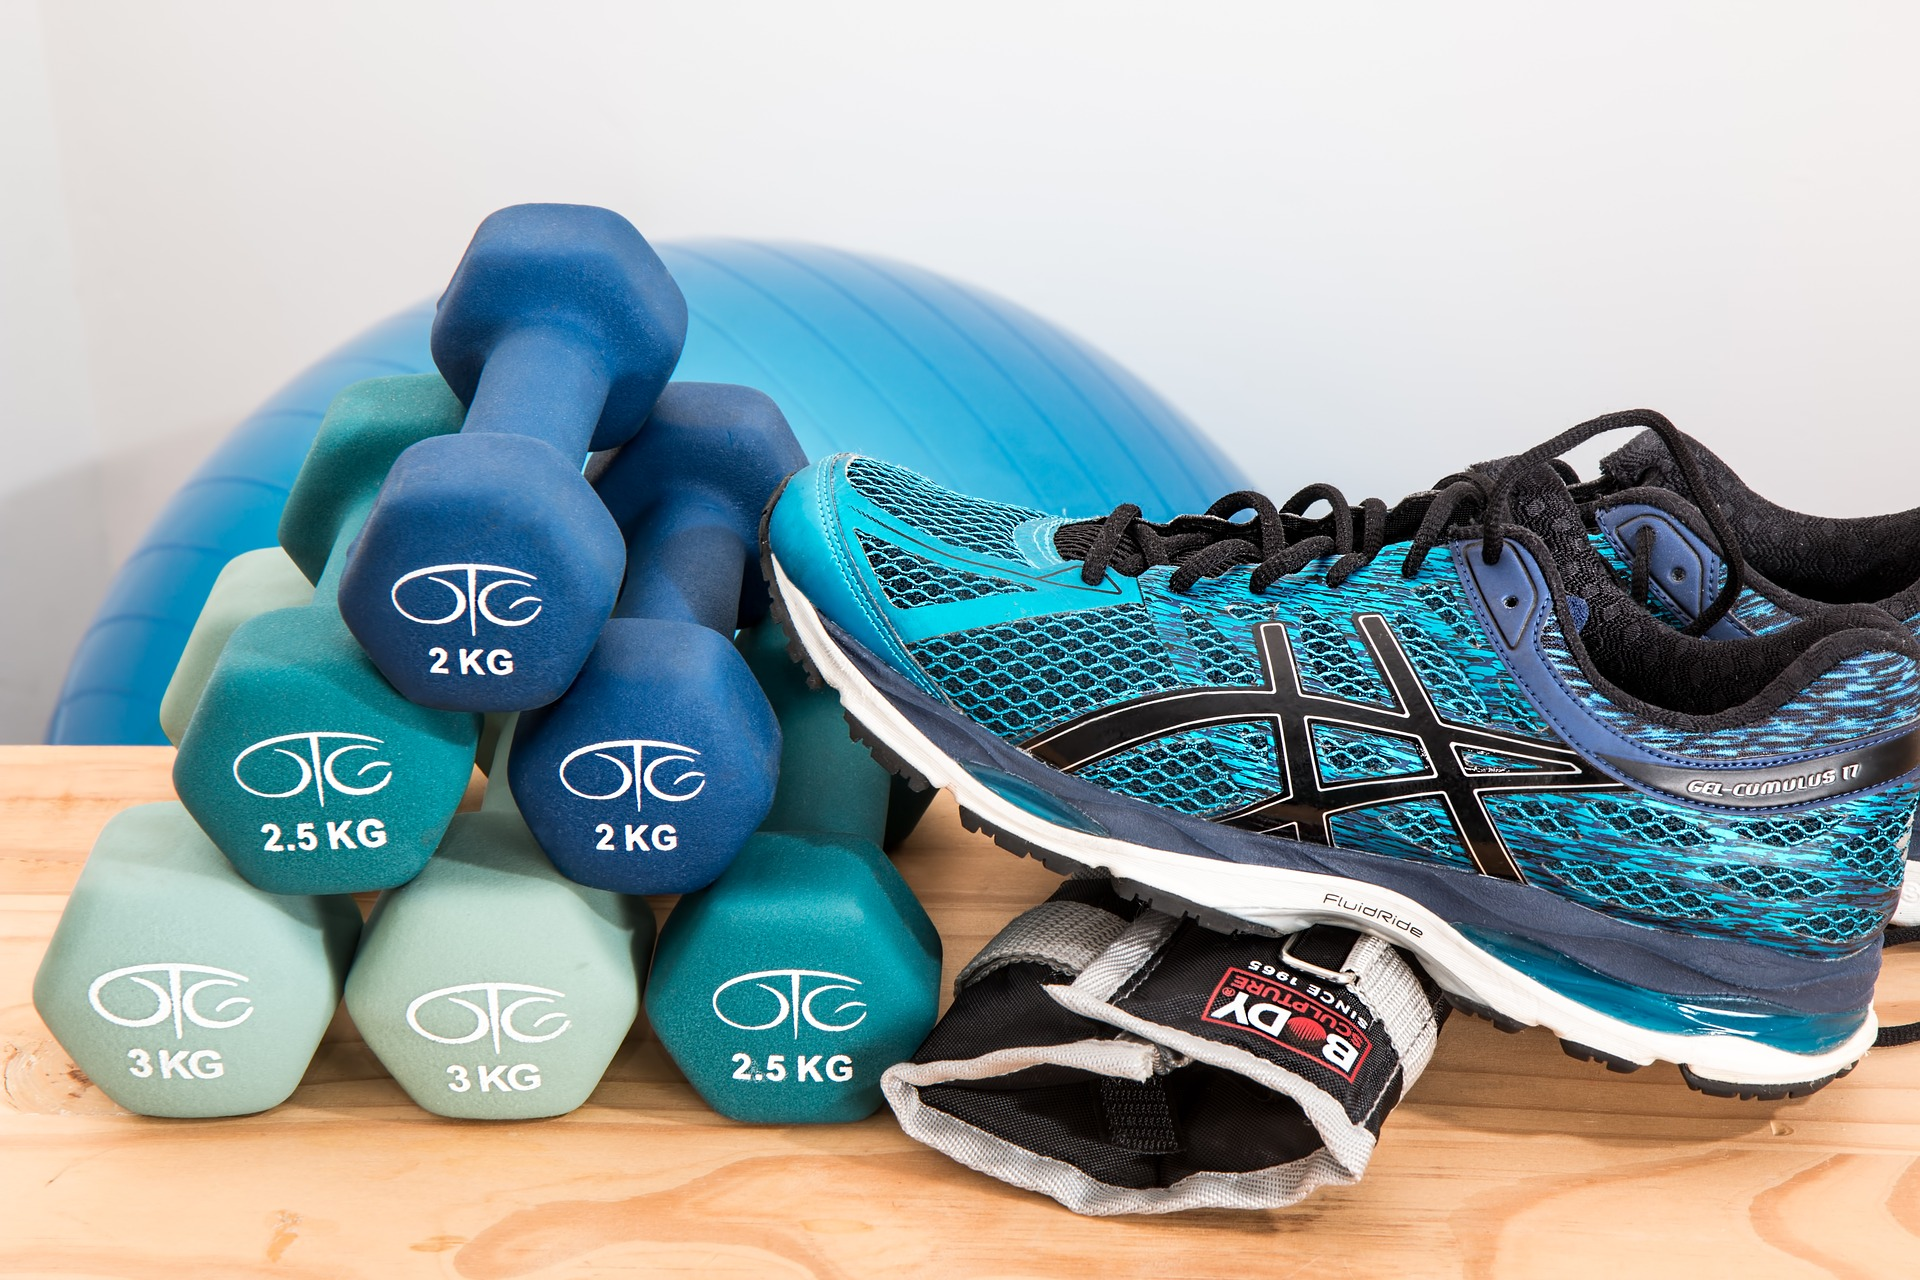 New Year, New You With Fit4Less: Why New Year's Fitness Goals Often Fail